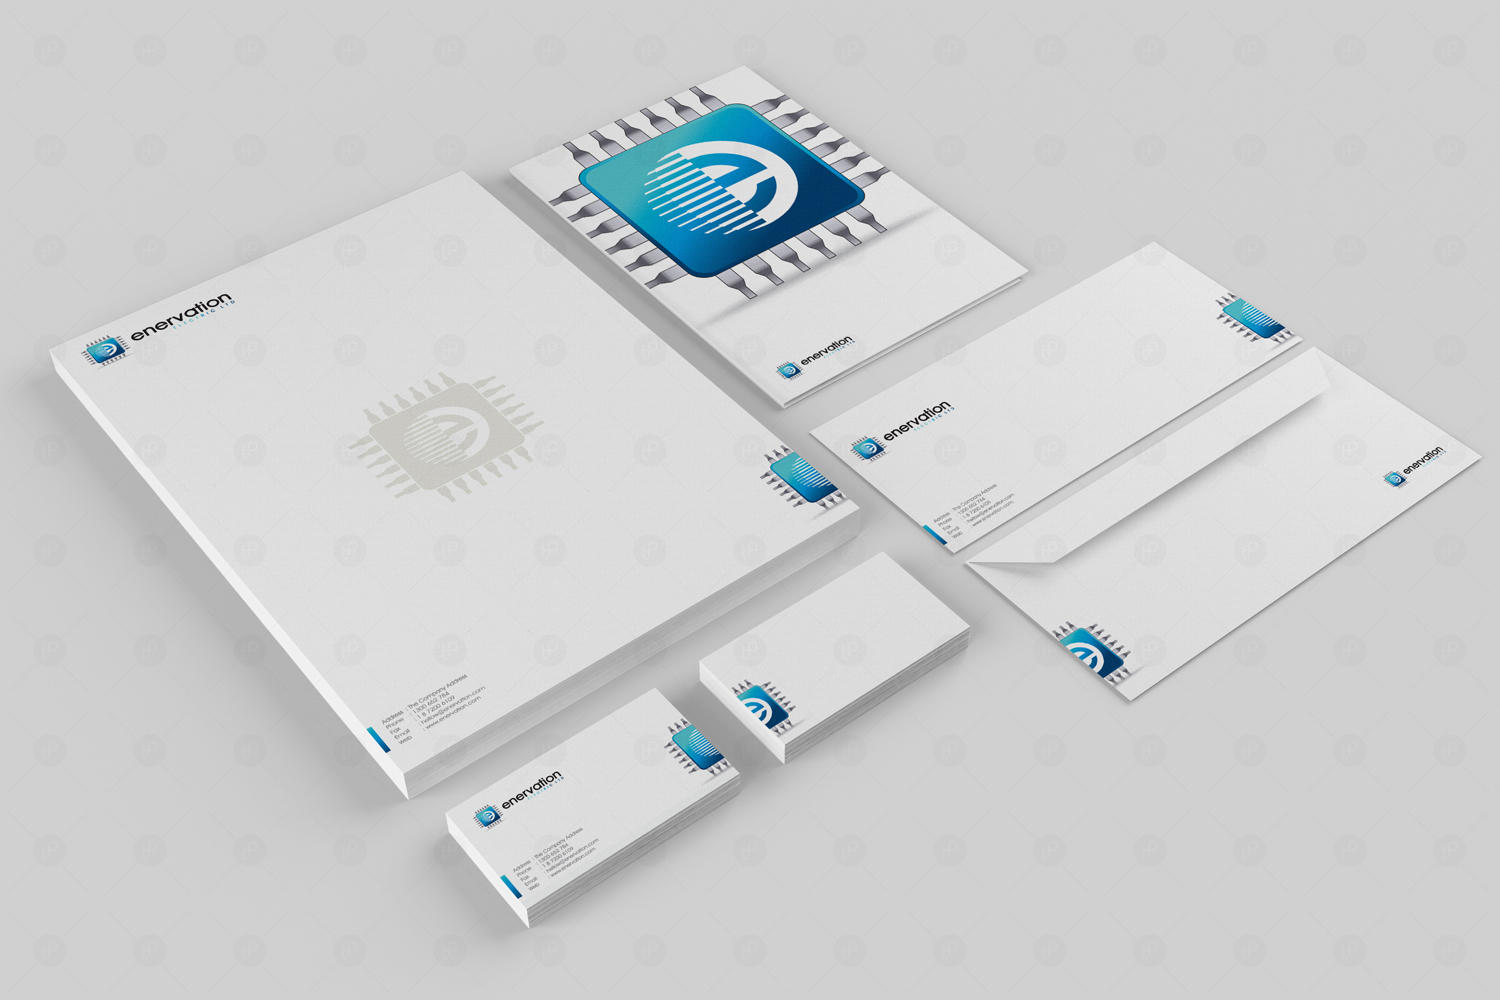 Corporate Stationery Design by ThomasPaul - 13346